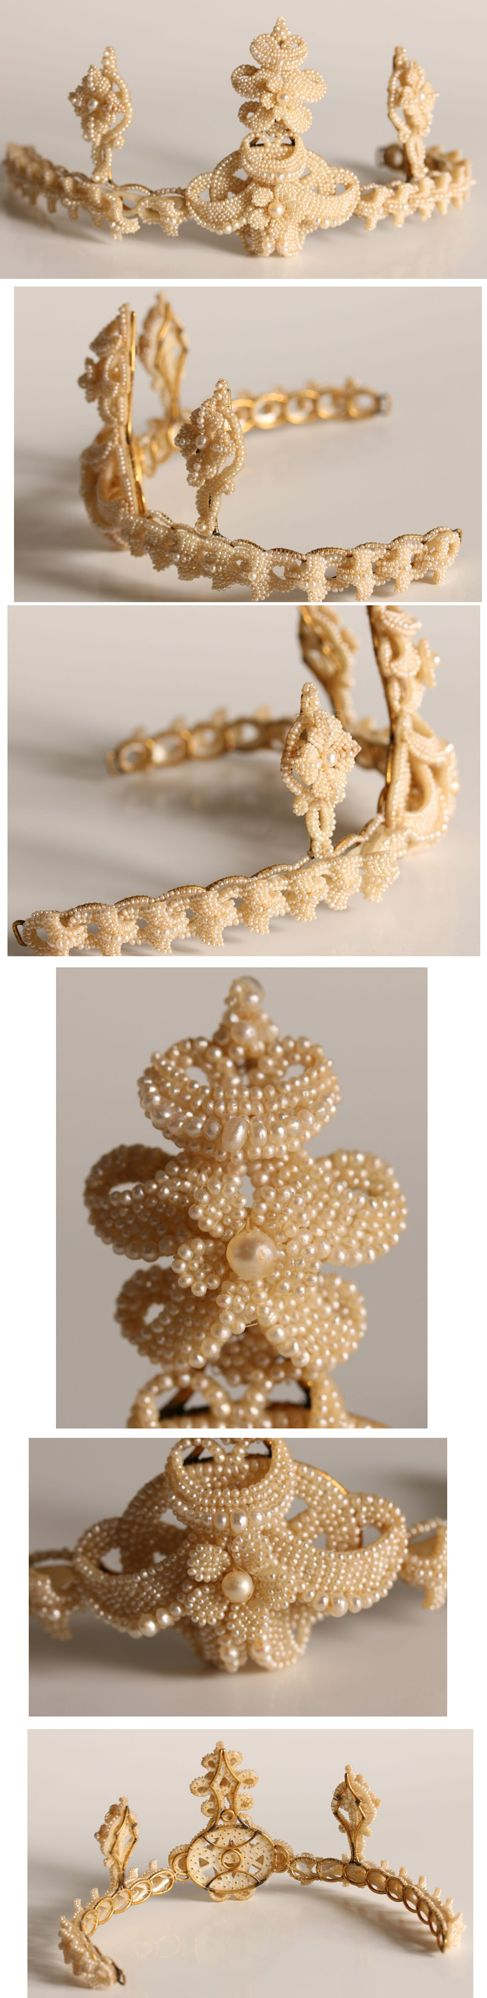 CIRCA 1850'S SEED PEARL TIARA. Tiara comprised of thousands of seed pearls, hand drilled and strung on mother of pearl backing and laced on to a gold wire frame. http://www.liveauctioneers.com/item/26720278_a-victorian-diamond-tiaranecklace